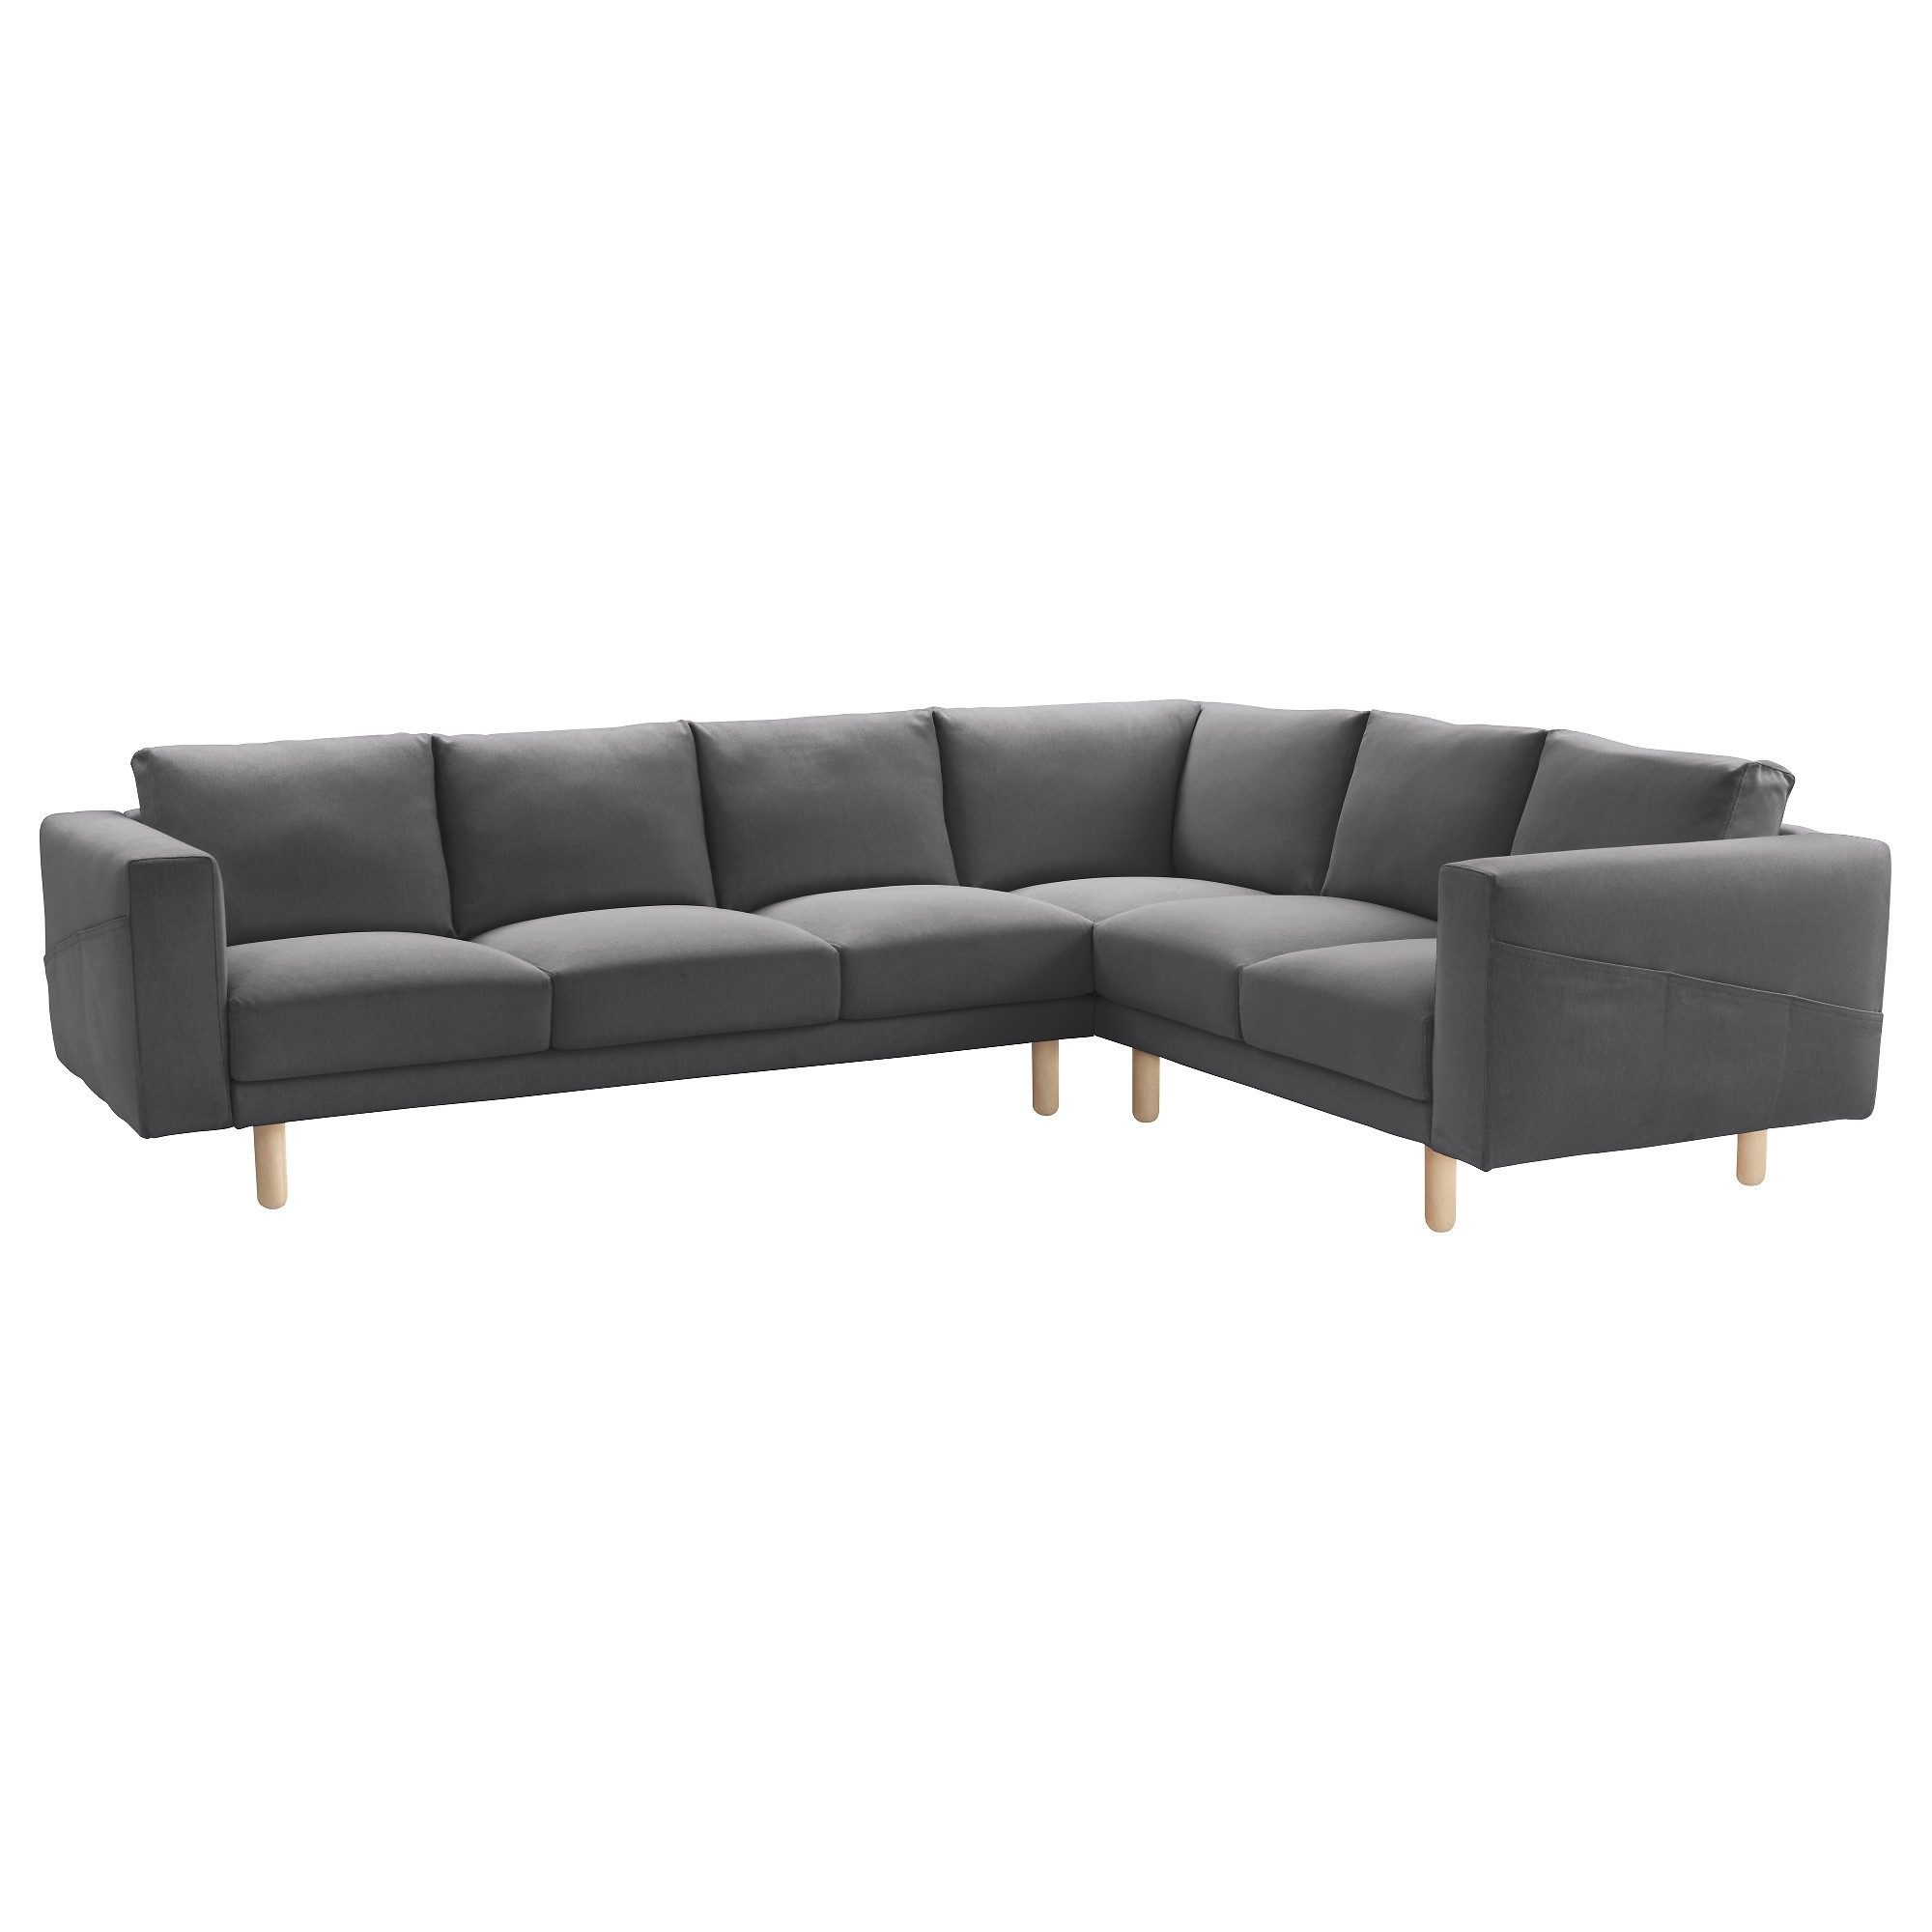 Ikea Small Sofas Pertaining To Current Norsborg Sectional, 5 Seat Corner – Finnsta Dark Gray, Birch – Ikea (View 15 of 15)